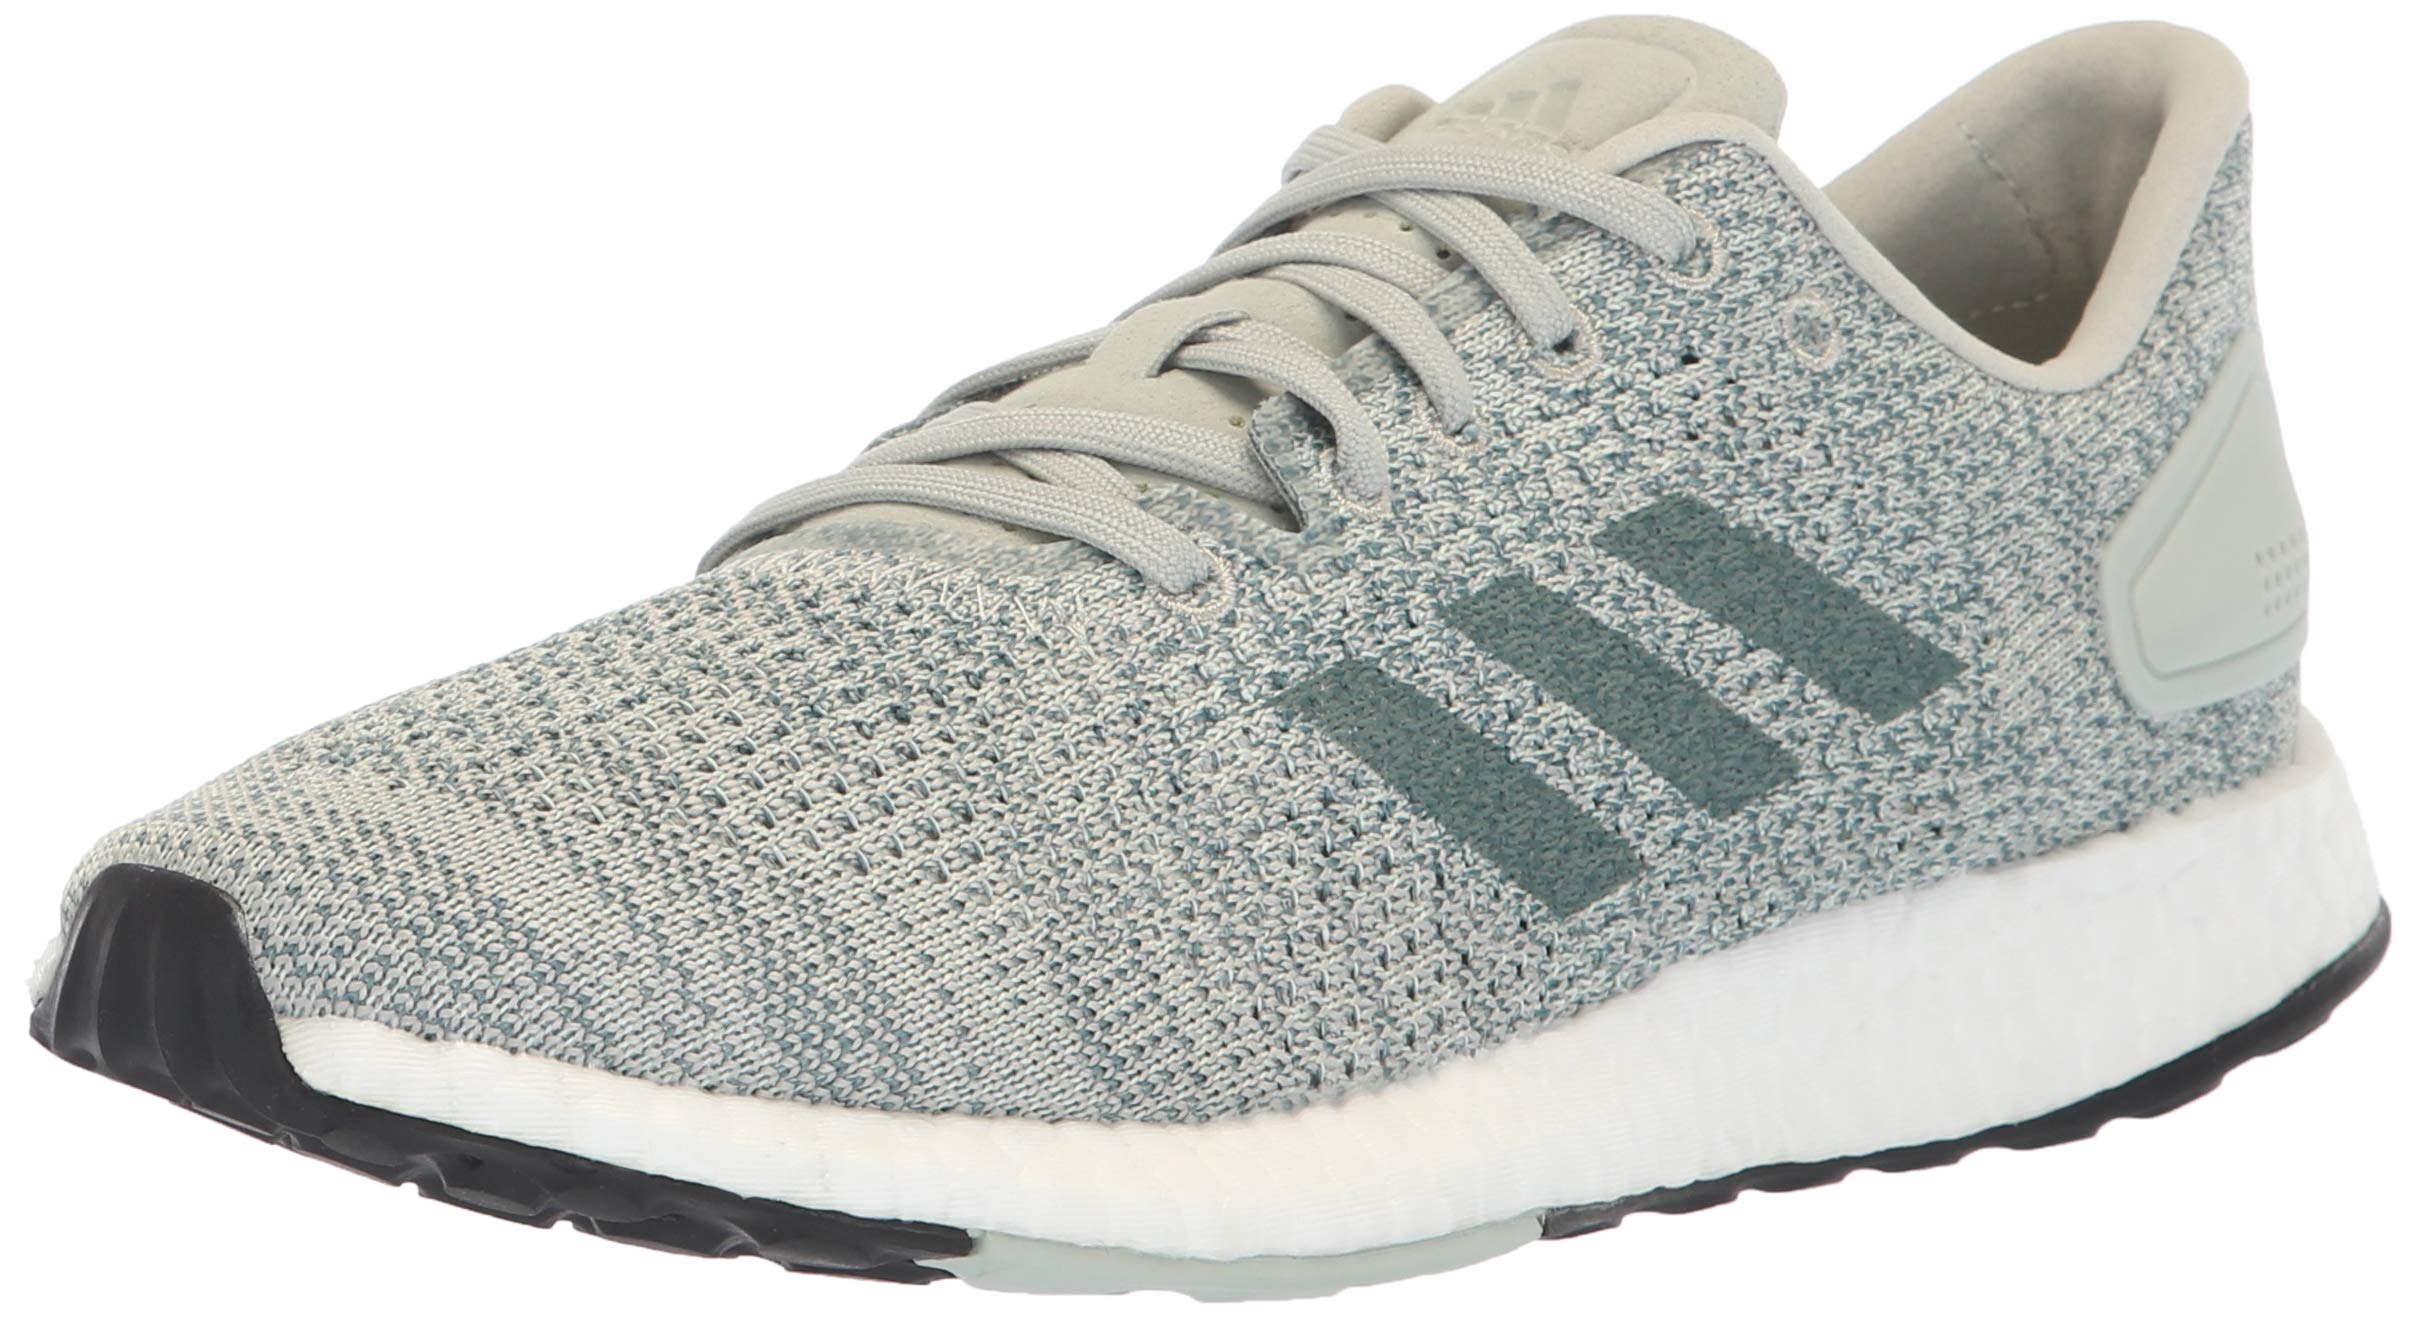 adidas Women's Pureboost DPR Running Shoes, ash Silver/raw aero Green, 10.5 M US by adidas